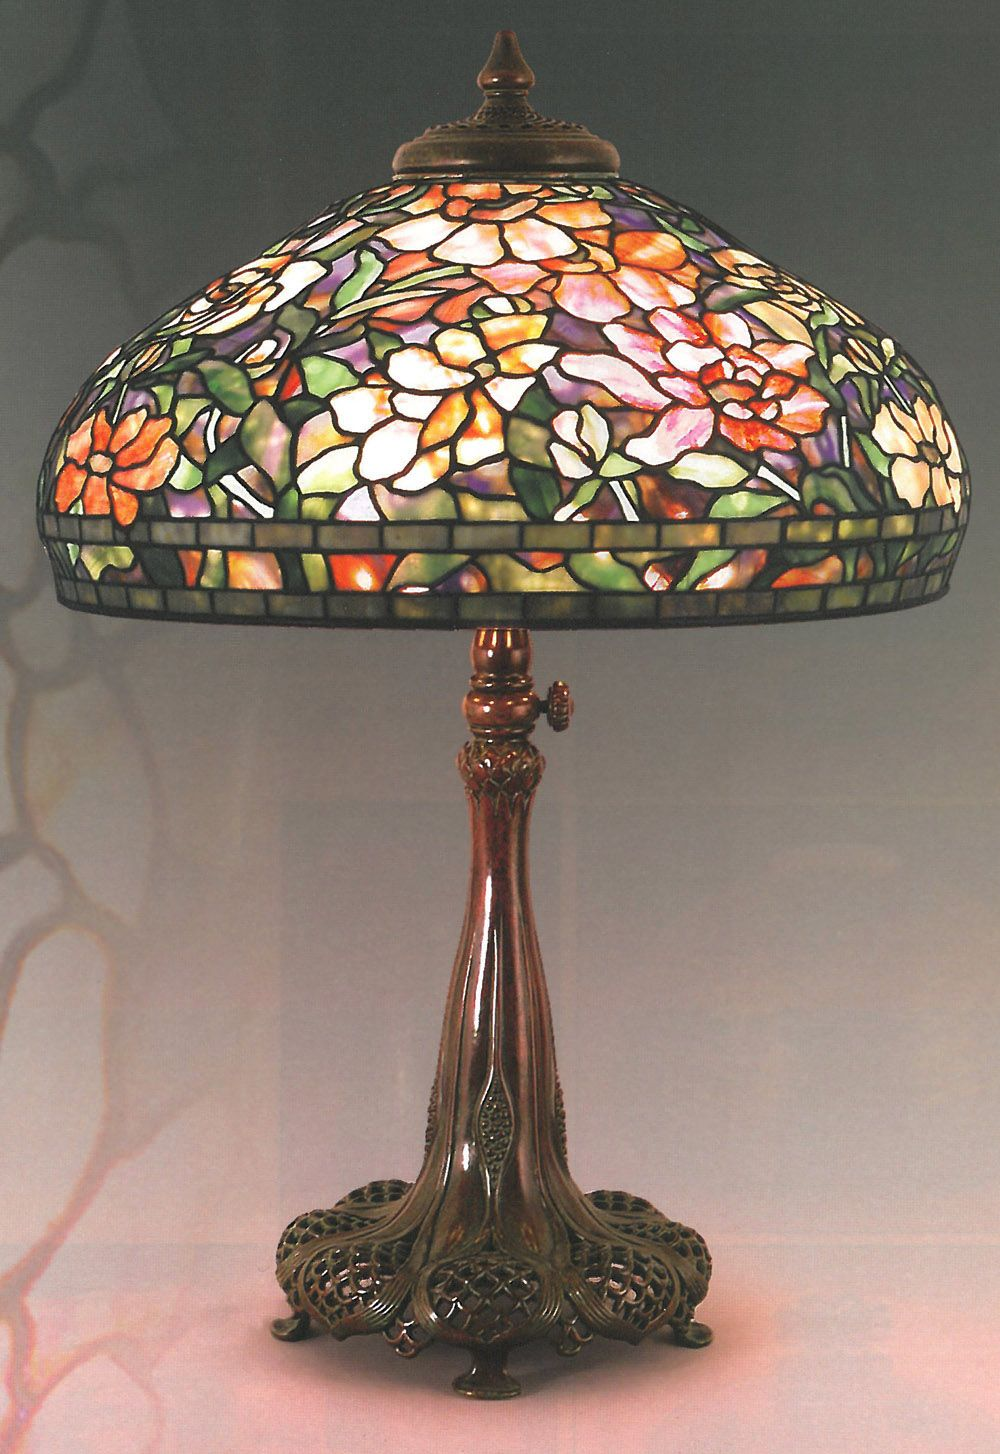 2a5a6af52e19 Authentic Tiffany lamp in the